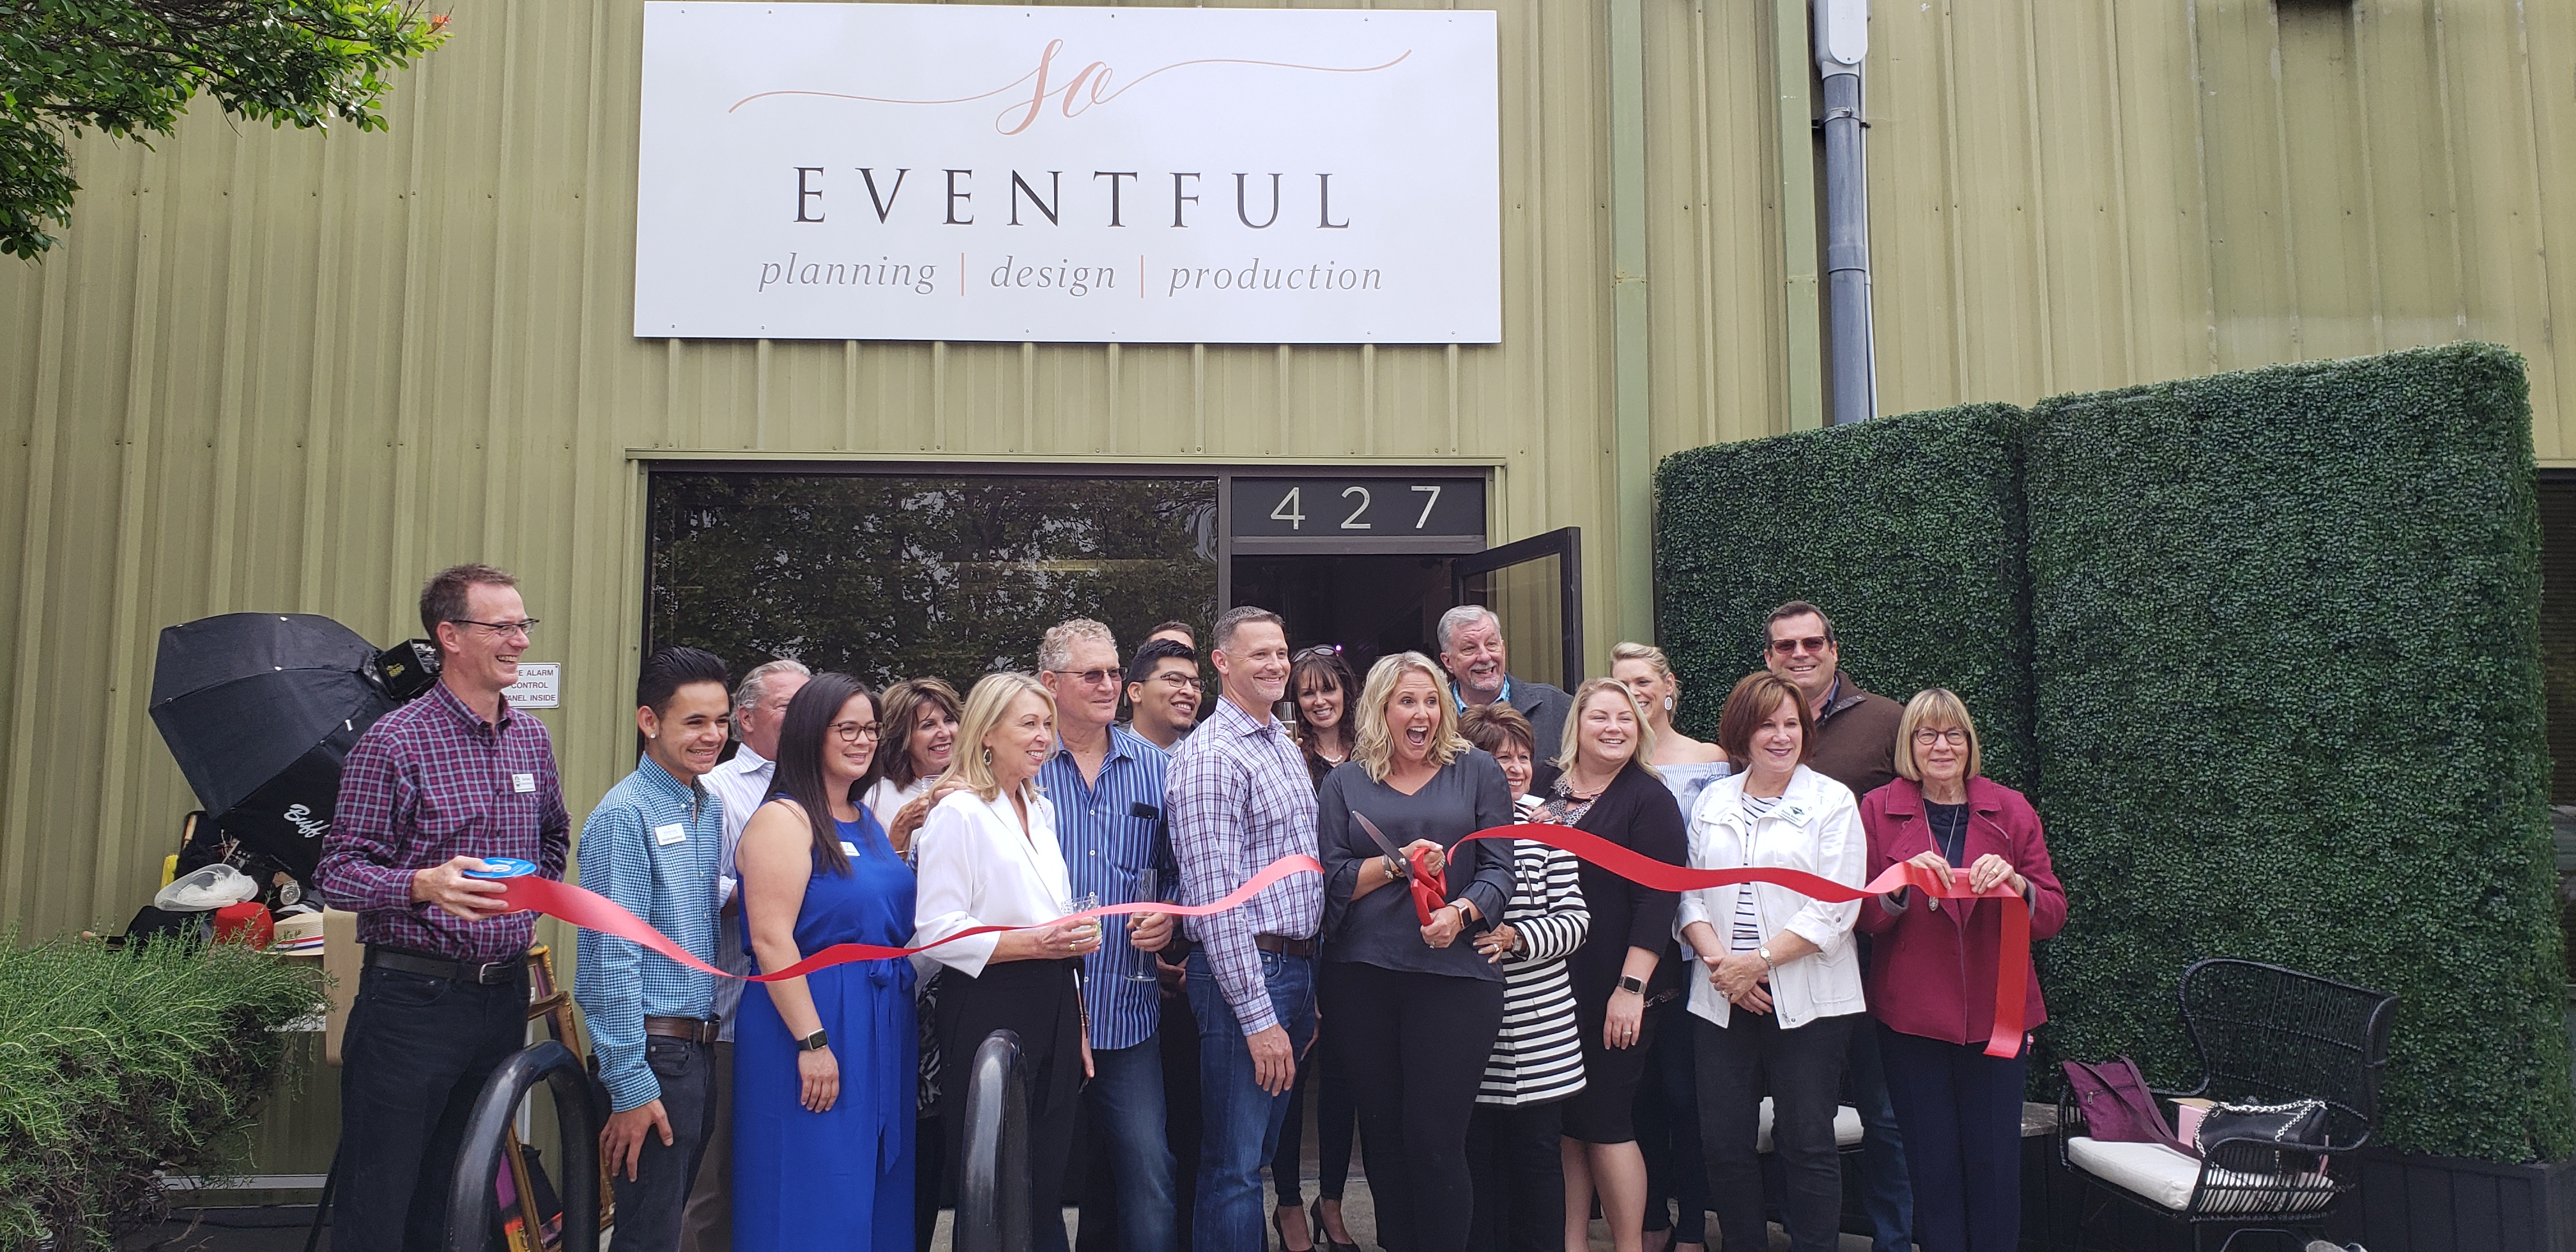 people gathered for a ribbon cutting ceremony outside of So Eventful's new location in Downtown Healdsburg.